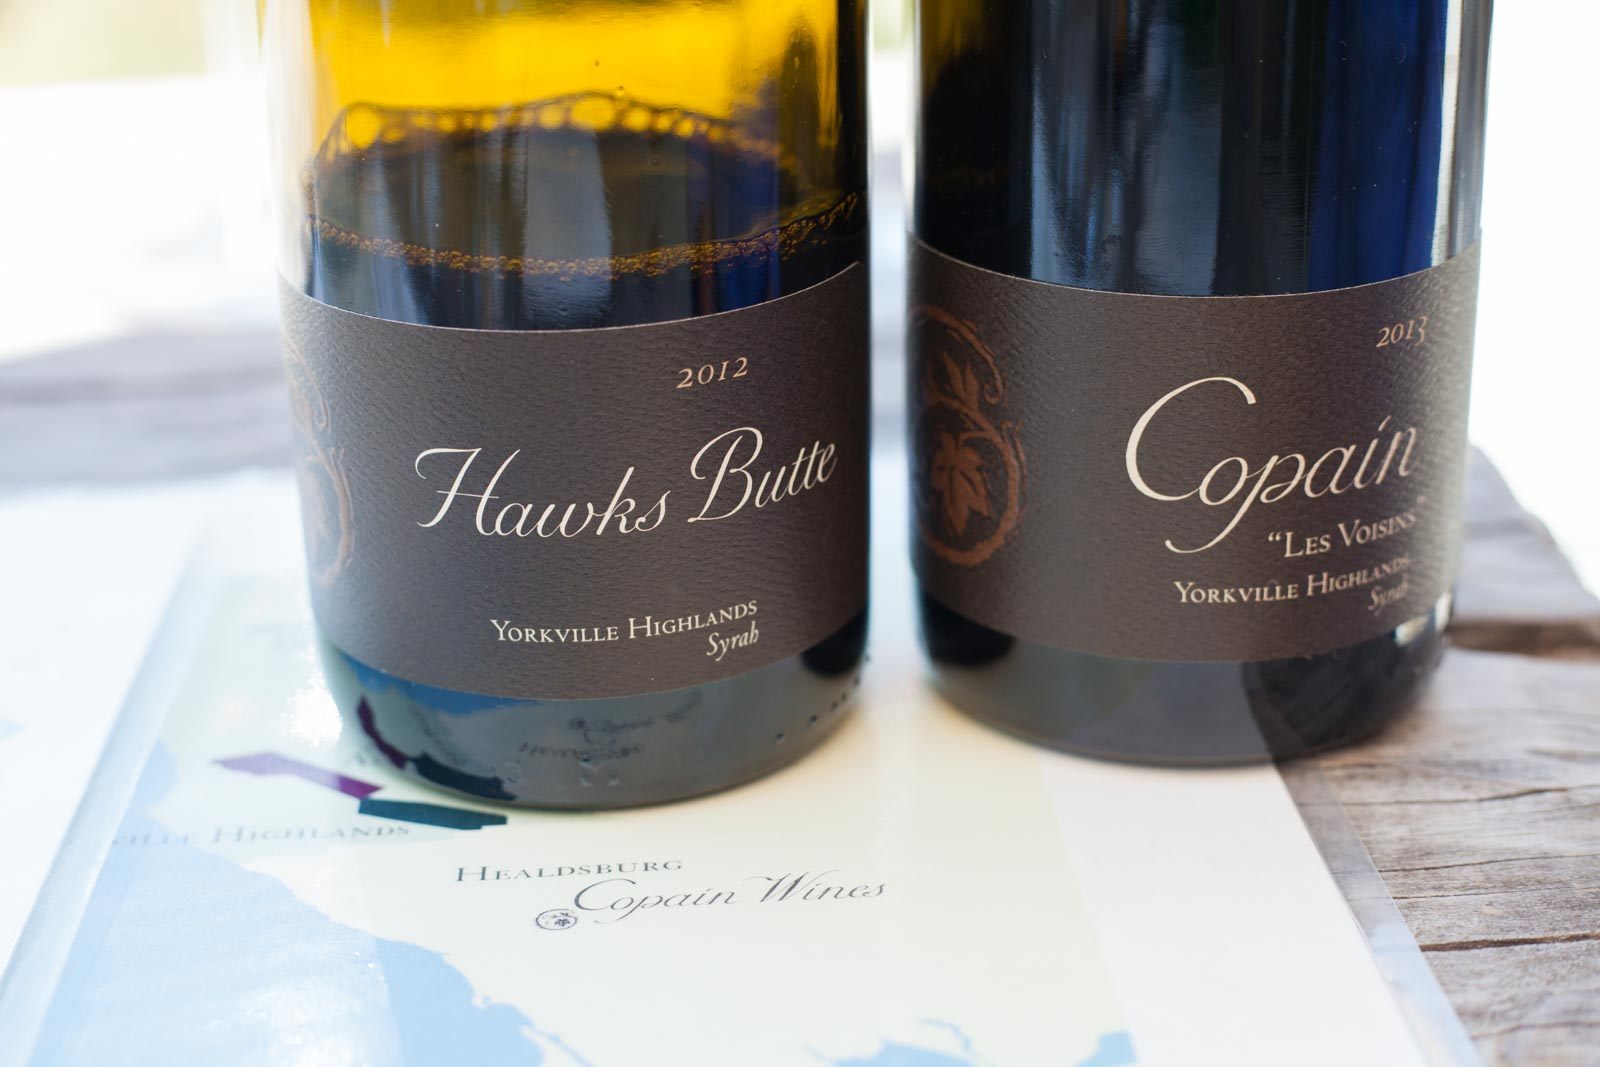 Wines of Copain ©Kevin Day/Opening a Bottle